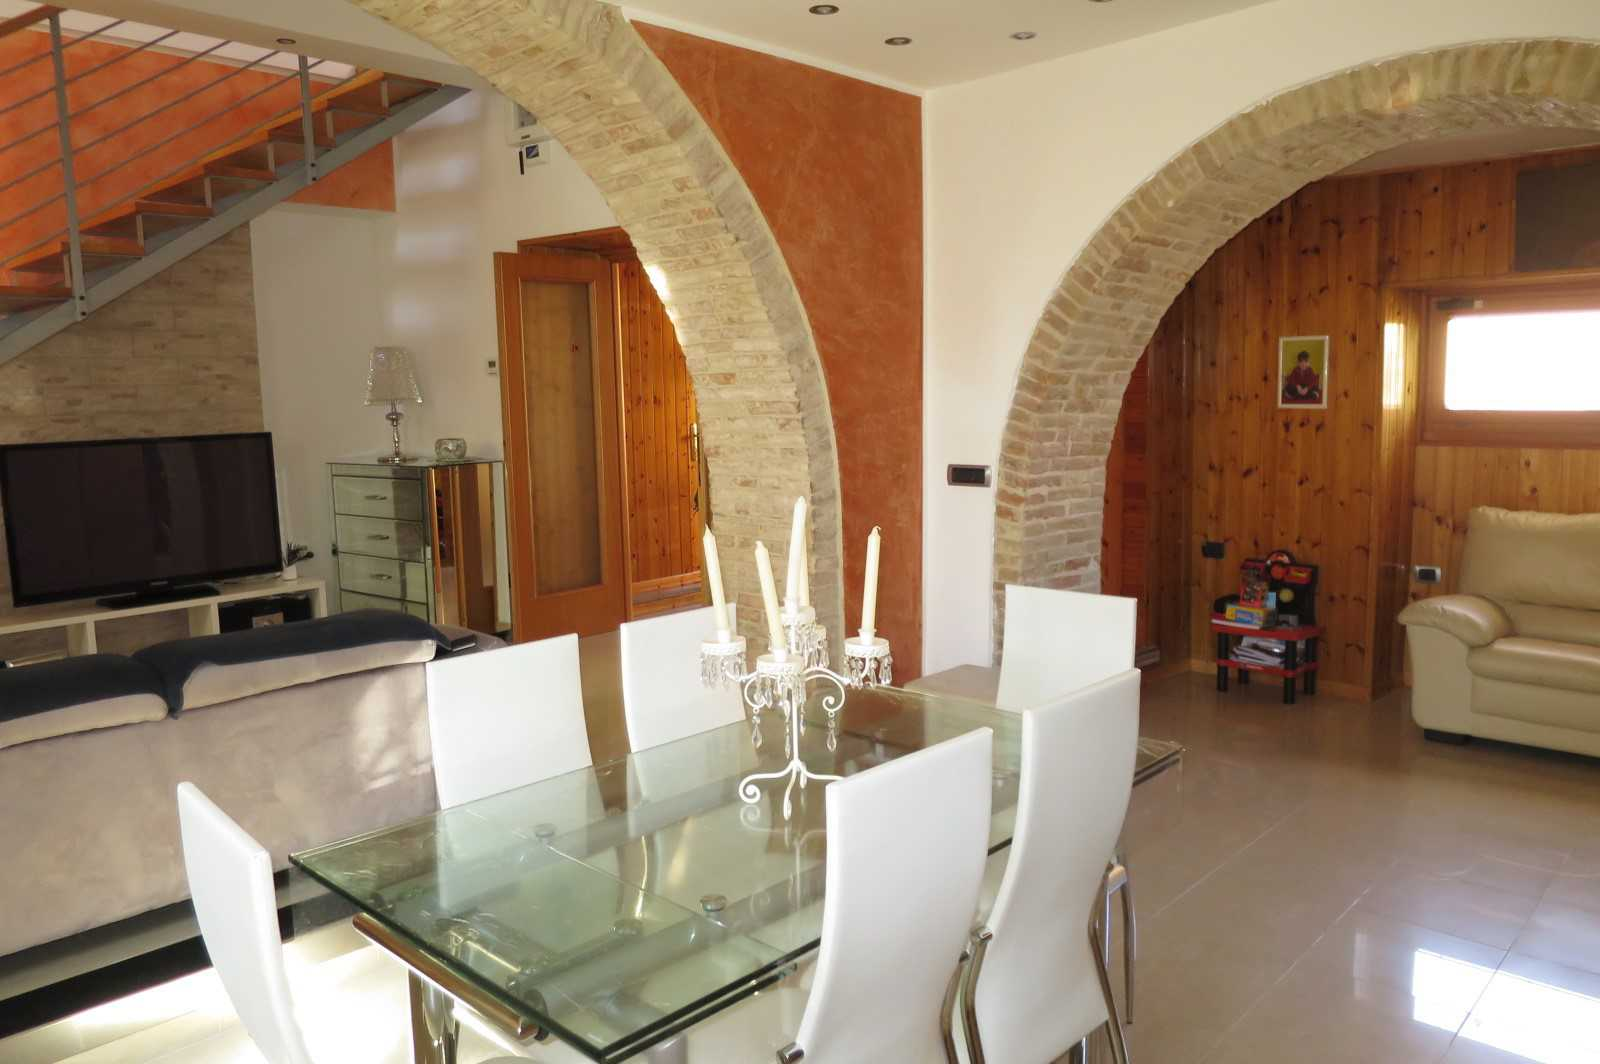 Semi-detached House Semi-detached House for sale Cermignano (TE), Casa Gualtieri - Cermignano - EUR 201.814 110